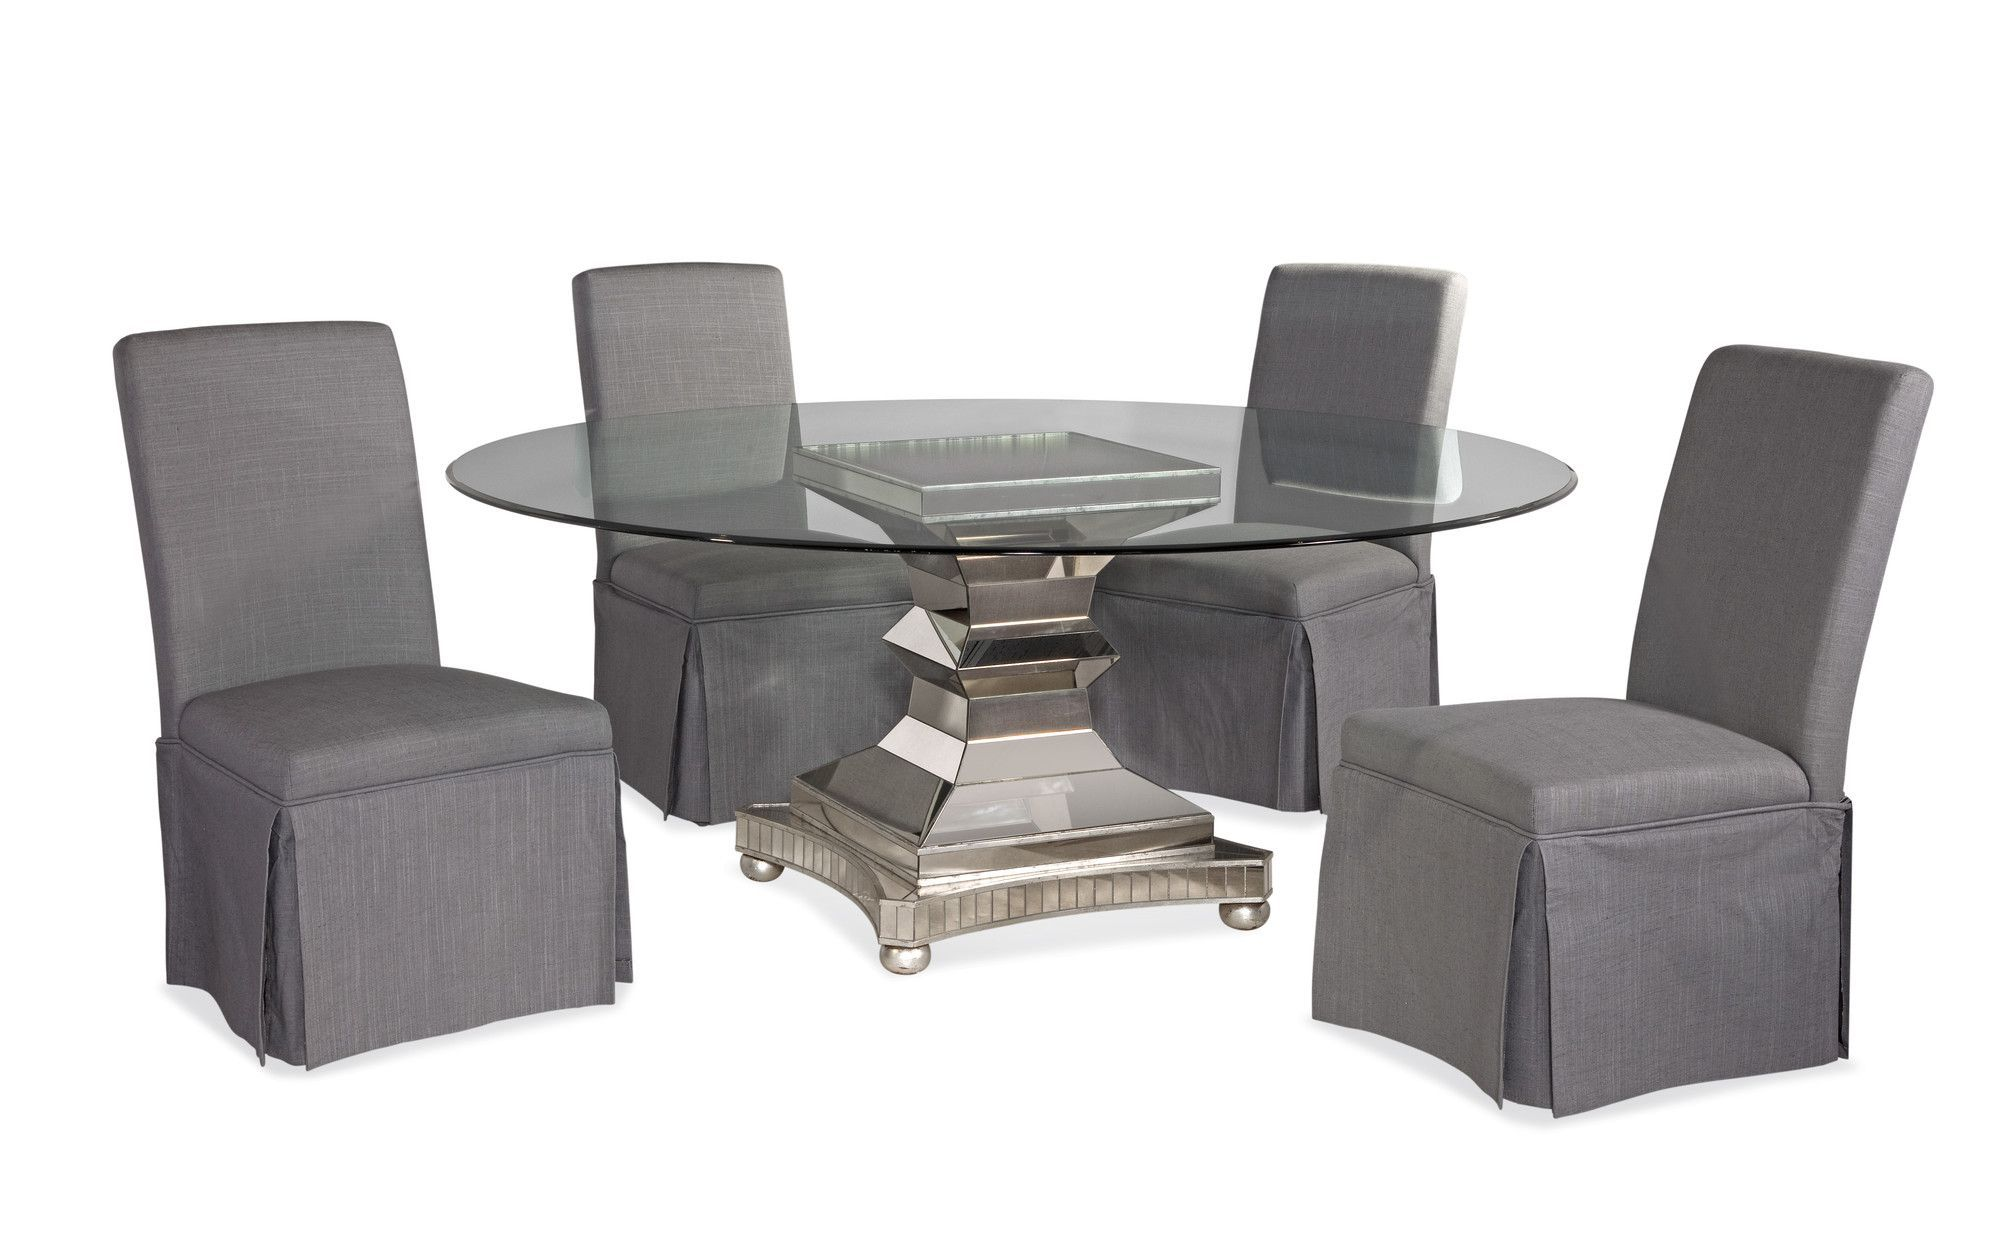 Hollywood Glam 6 Piece Moiselle Casual Dining Set Dining Room Sets 5 Piece Dining Set Dining Set